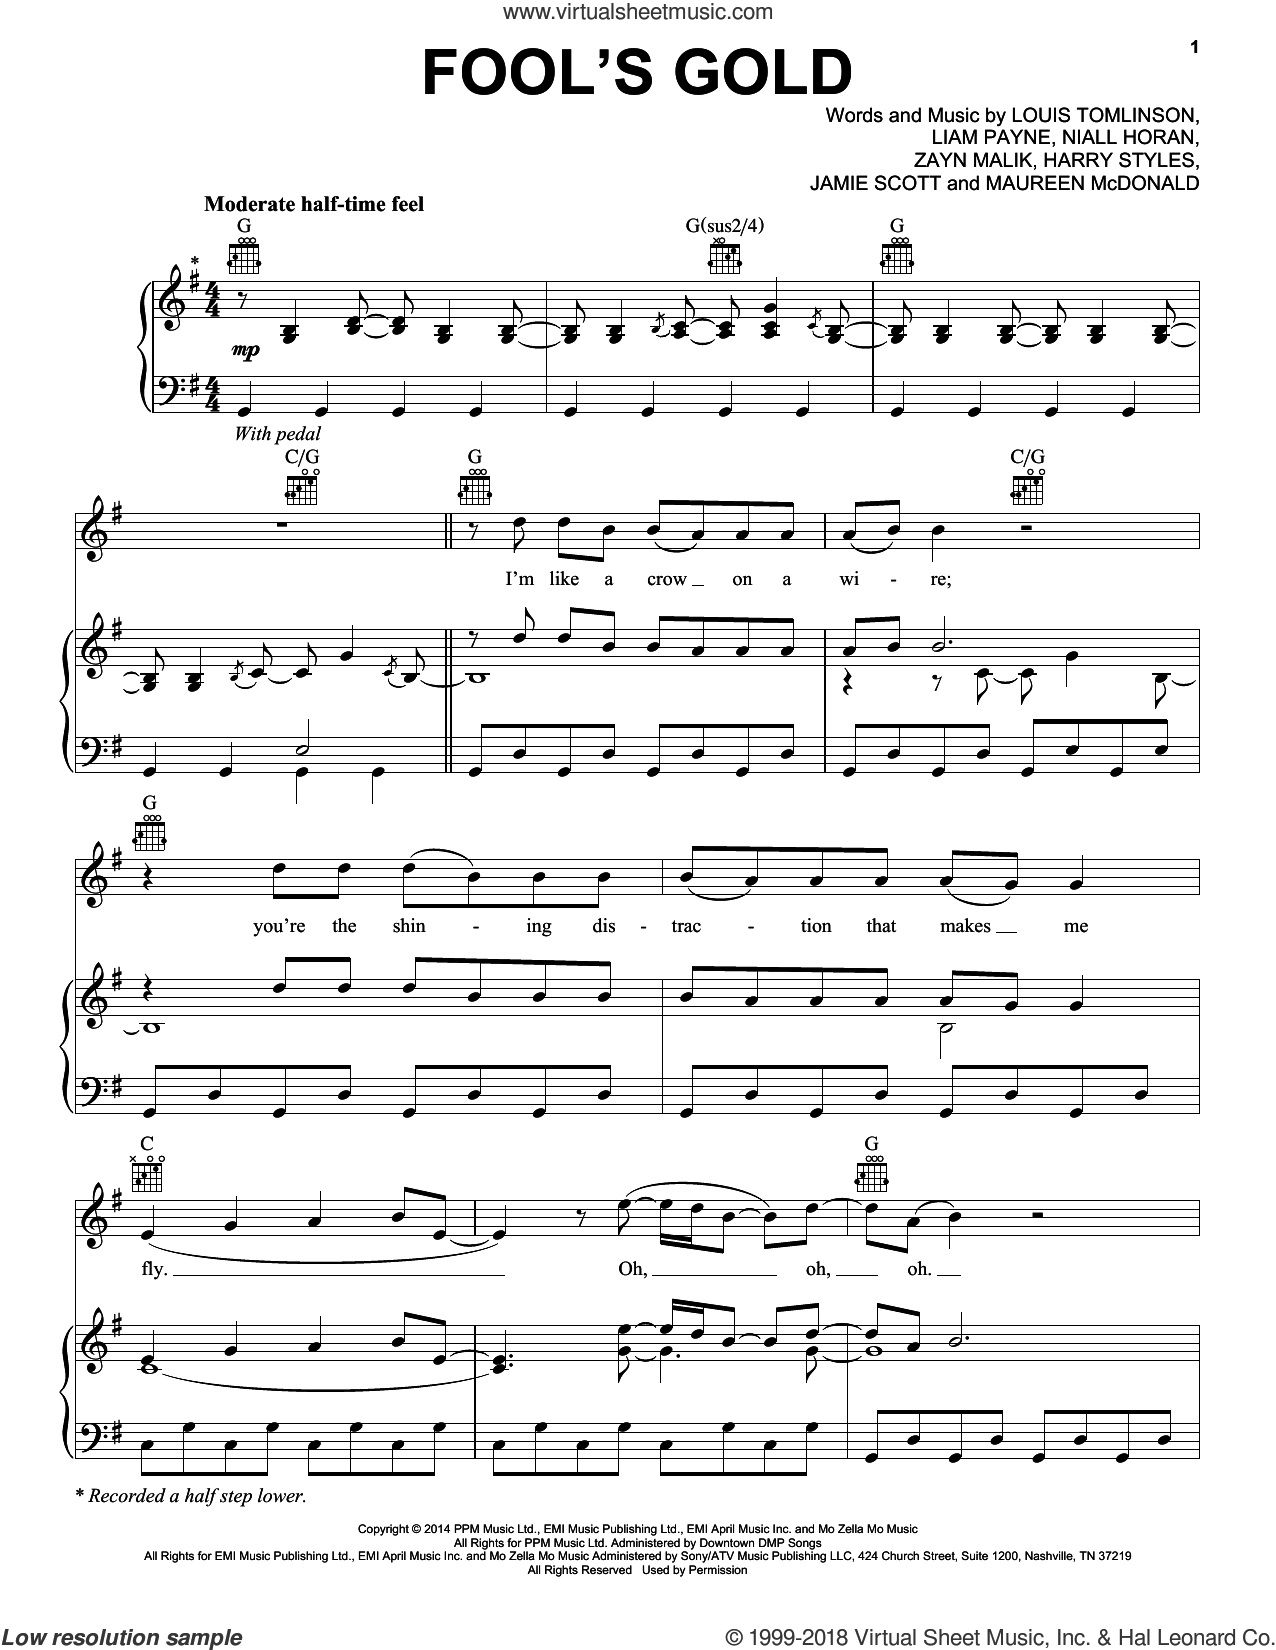 Fool's Gold sheet music for voice, piano or guitar by One Direction, Harry Styles, Jamie Scott, Liam Payne, Louis Tomlinson, Maureen McDonald, Niall Horan and Zayn Malik, intermediate